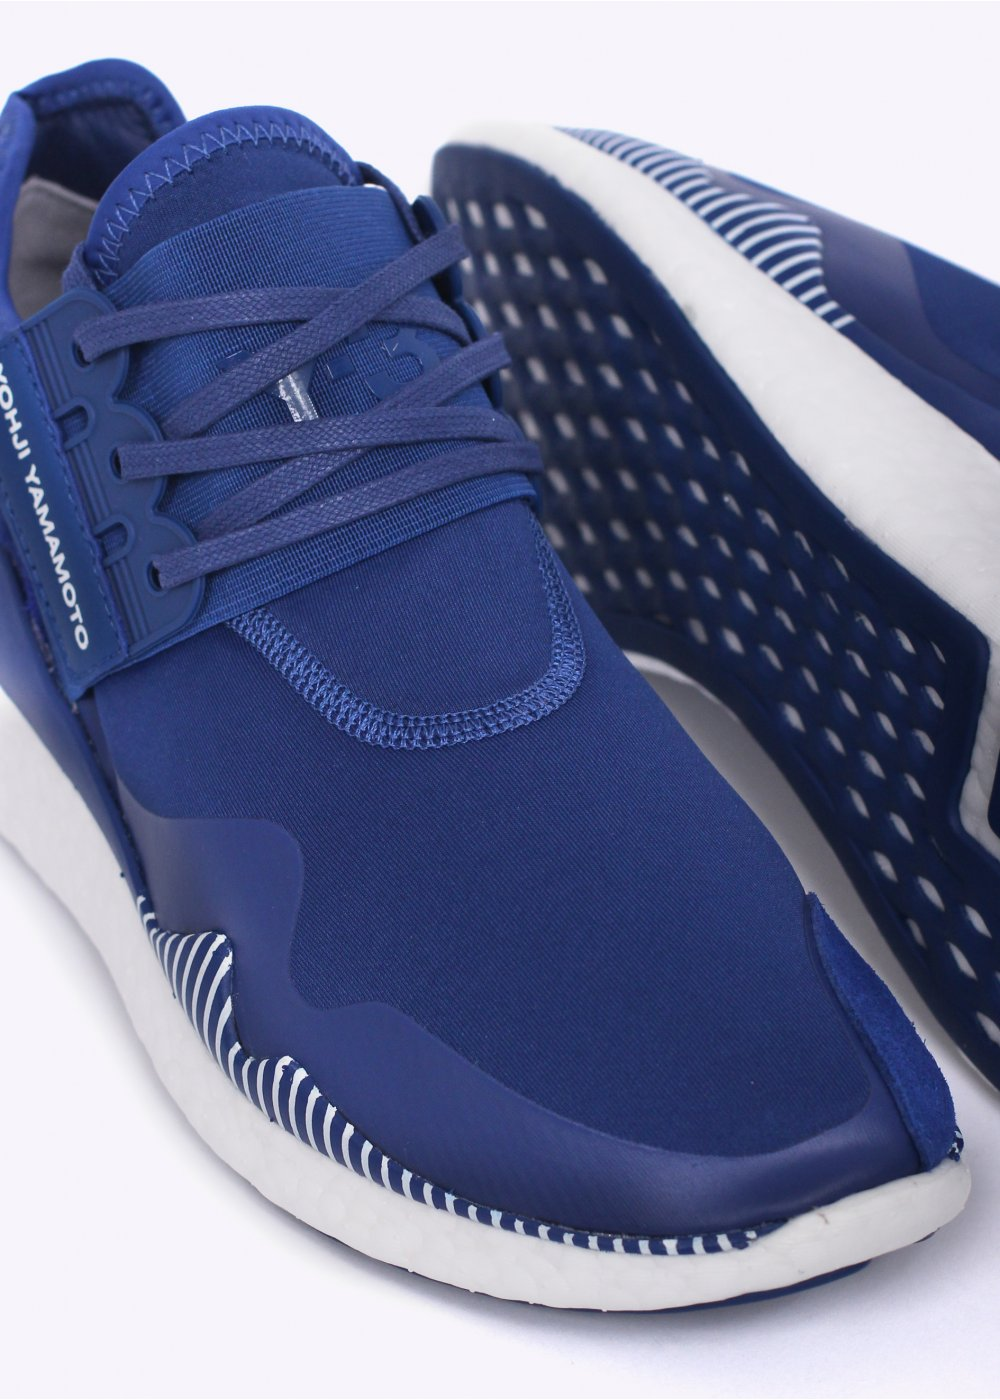 adidas y 3 retro boost trainers roundel blue. Black Bedroom Furniture Sets. Home Design Ideas